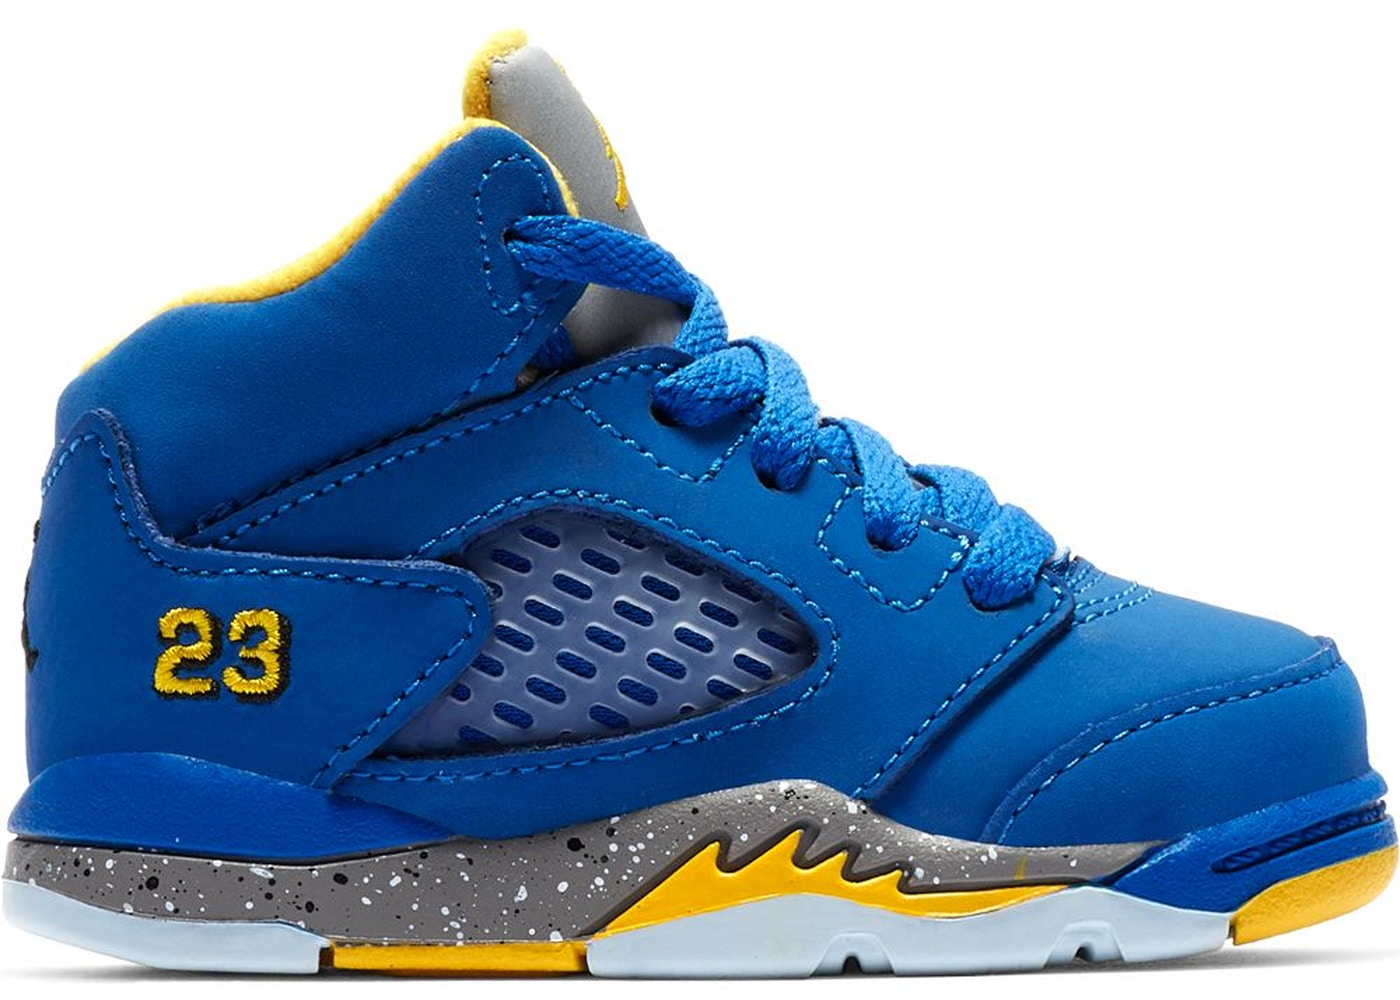 new products 4e9ae b4828 Jordan 5 Retro Laney Varsity Royal (TD)